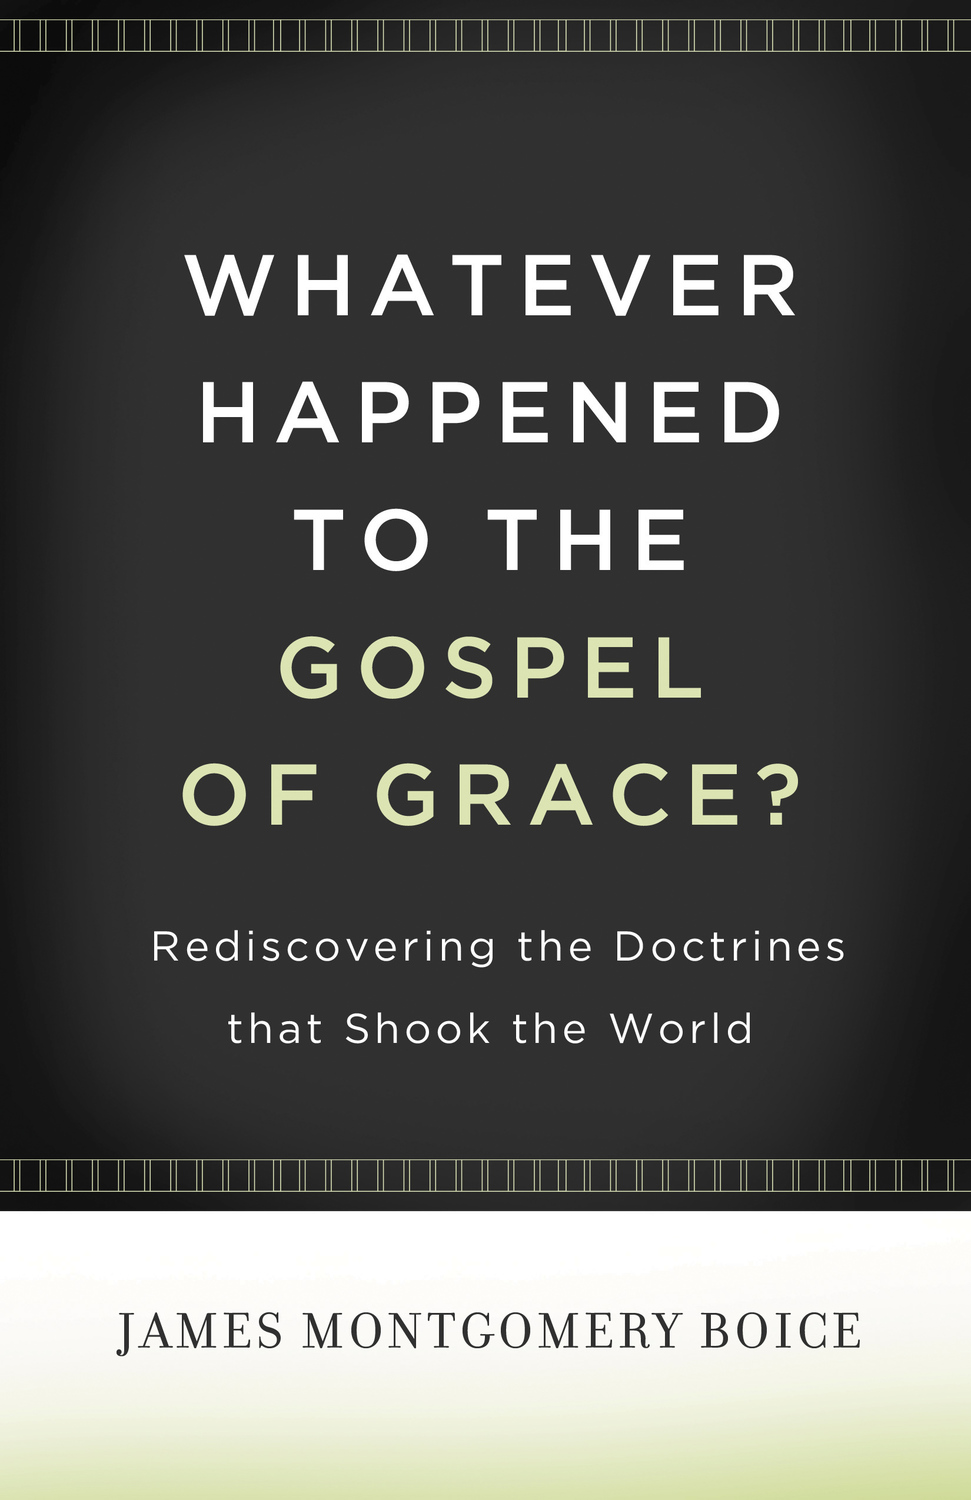 Whatever Happened to The Gospel of Grace?